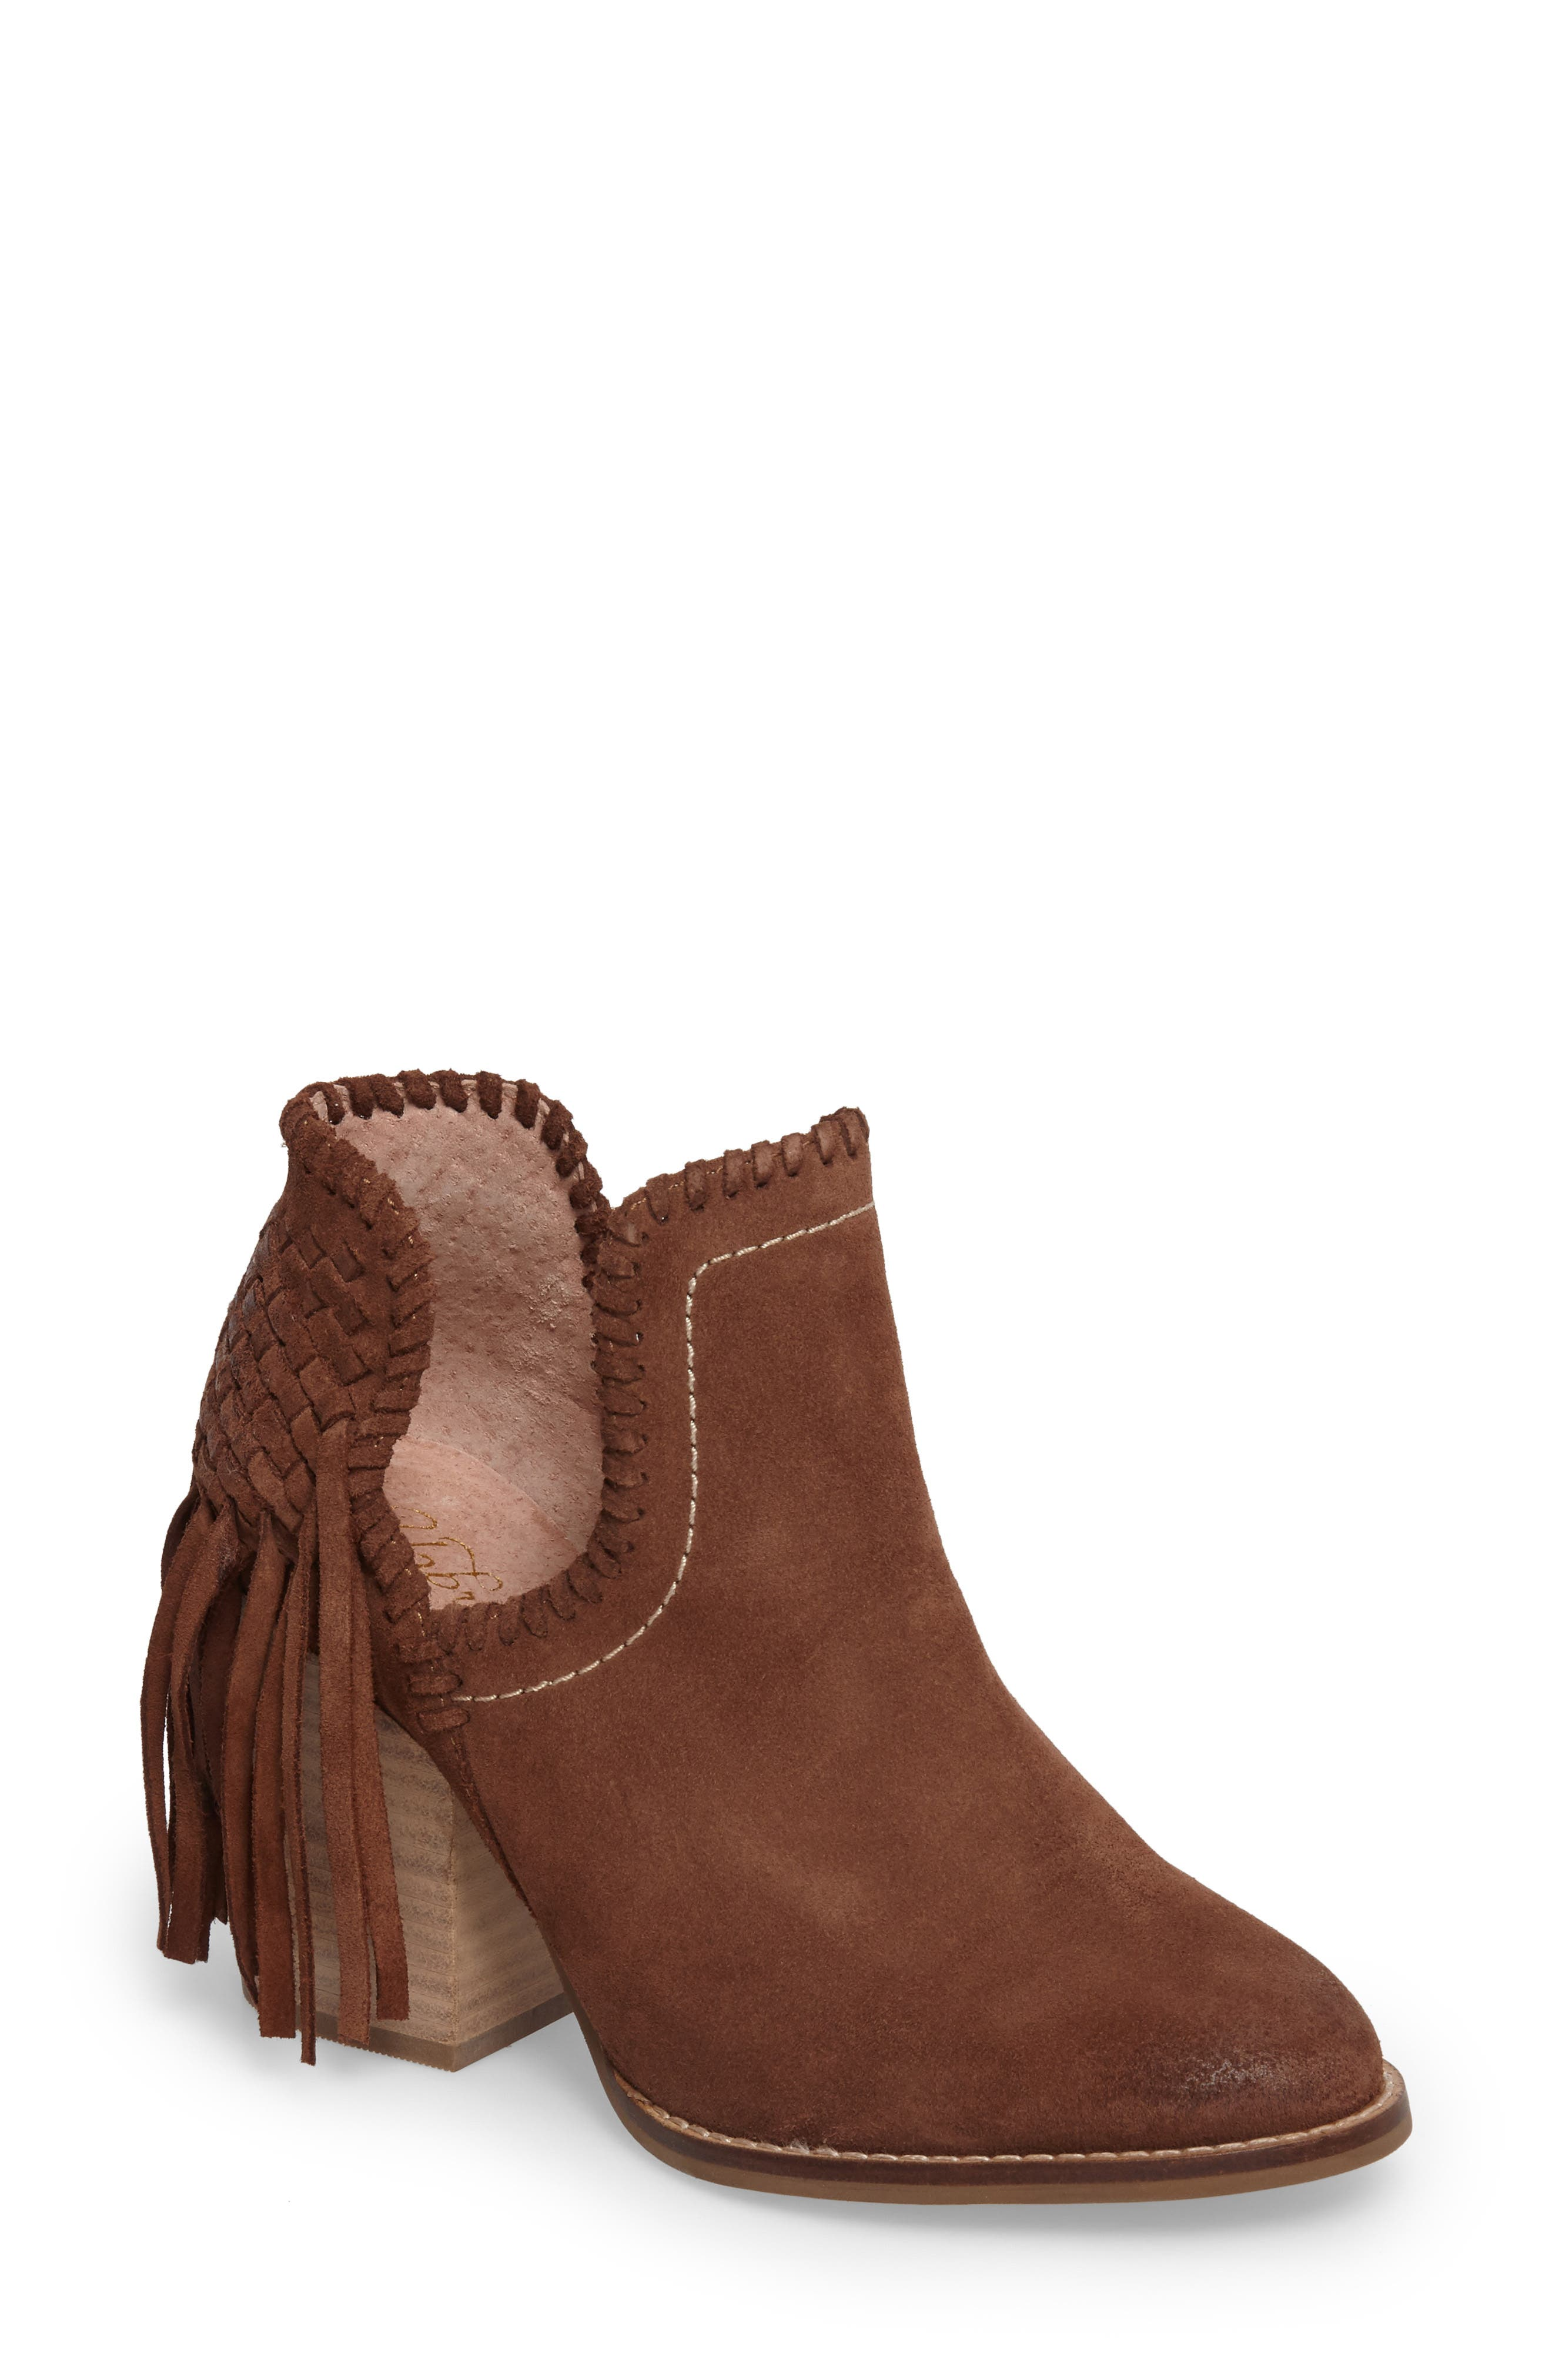 Unbridled Lily Bootie,                             Main thumbnail 1, color,                             Whiskey Suede